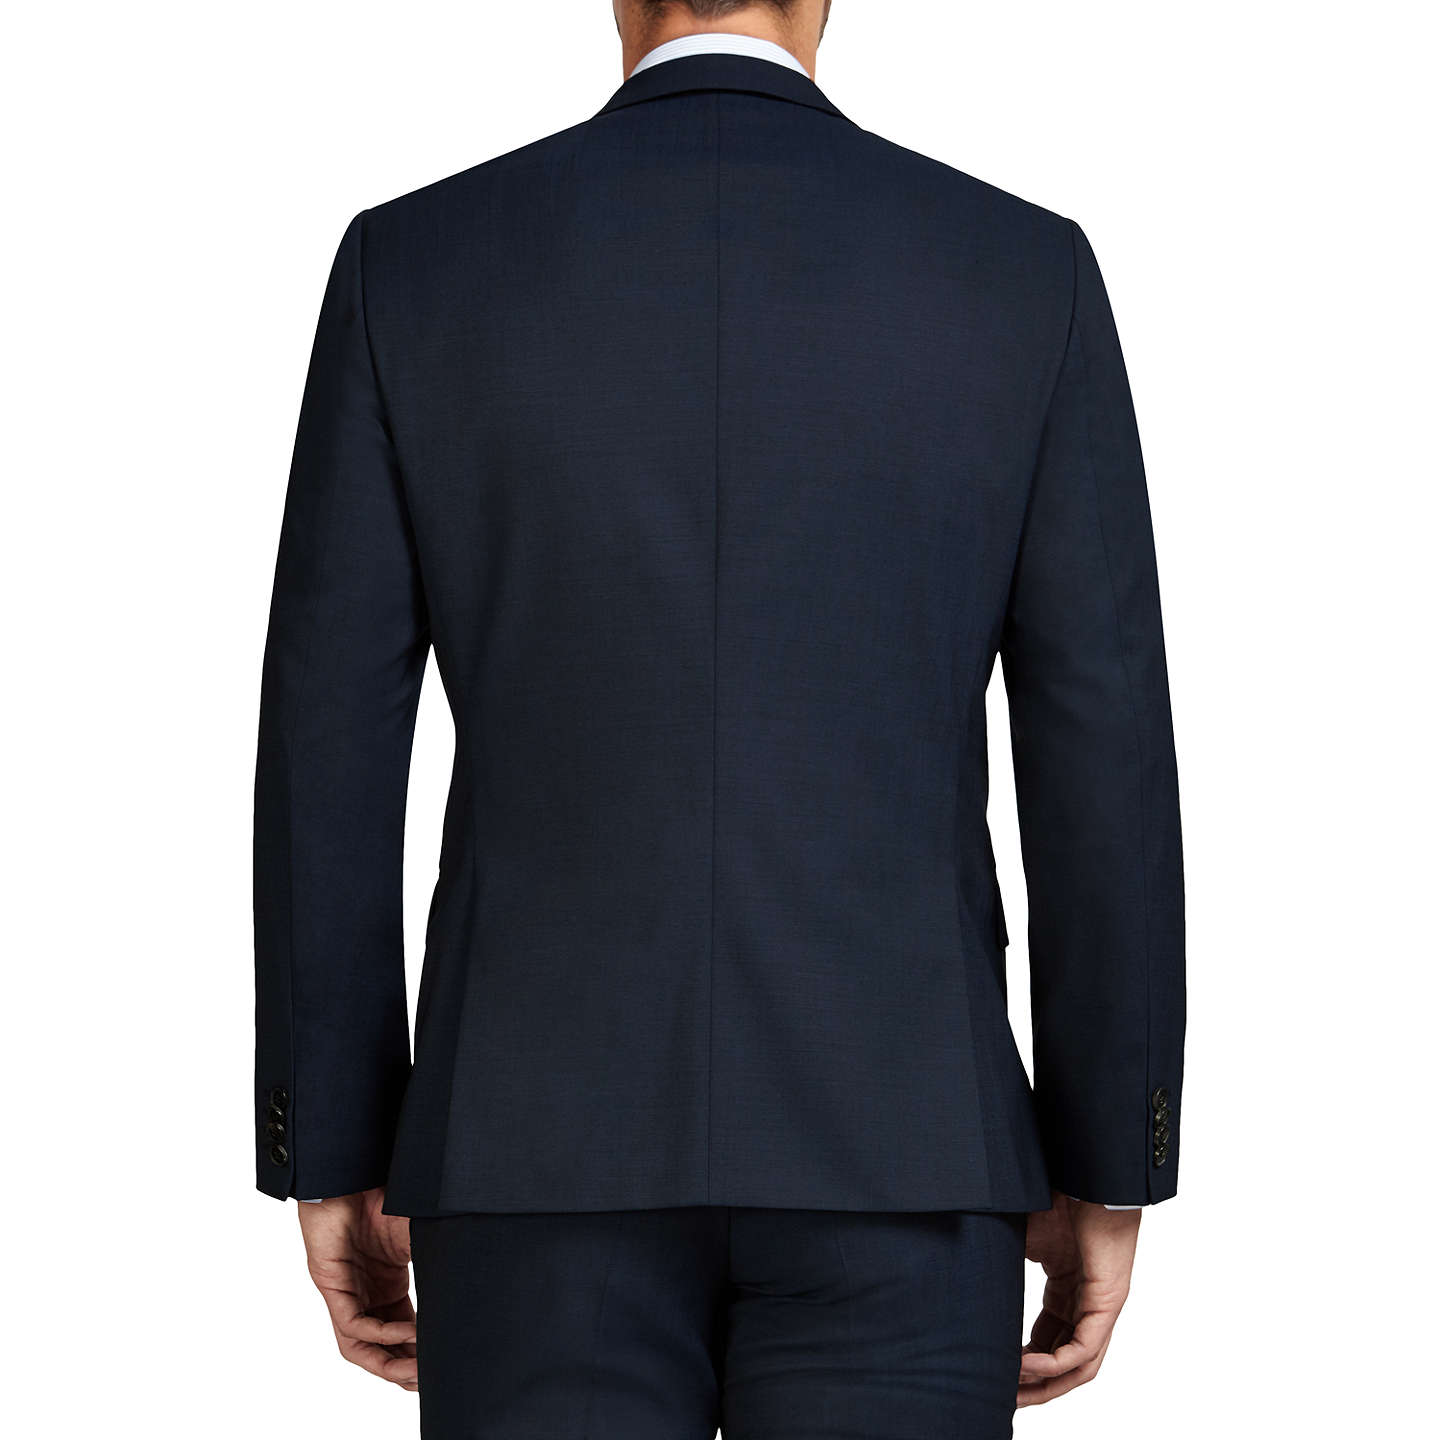 BuyHUGO by Hugo Boss Hayes Slim Fit Suit Jacket, Dark Blue, 36R Online at johnlewis.com